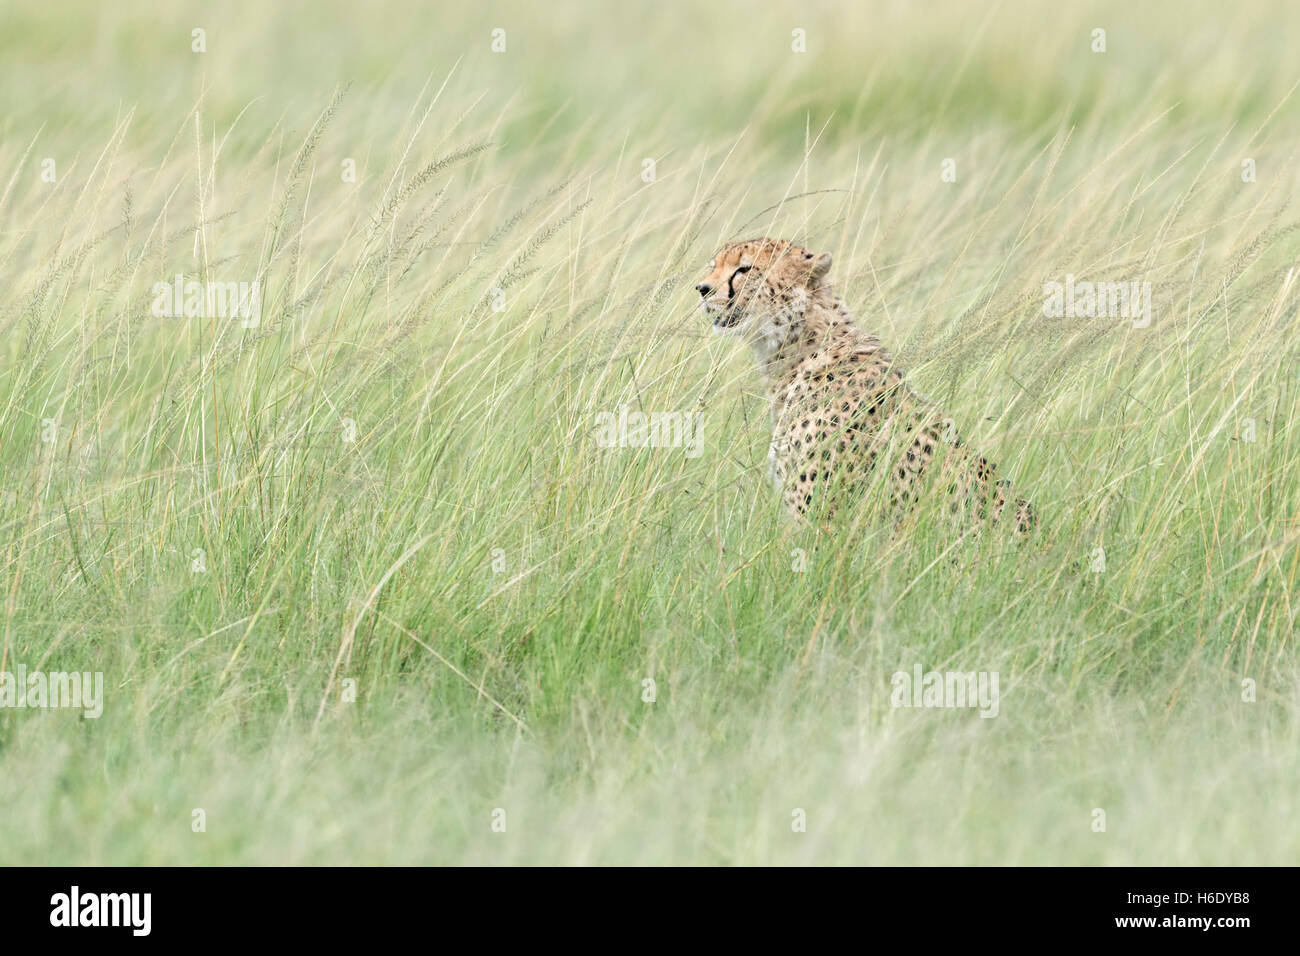 Cheetah (Acinonix jubatus) assis à se cacher dans l'herbe, à la recherche de proies, Maasai Mara National Photo Stock